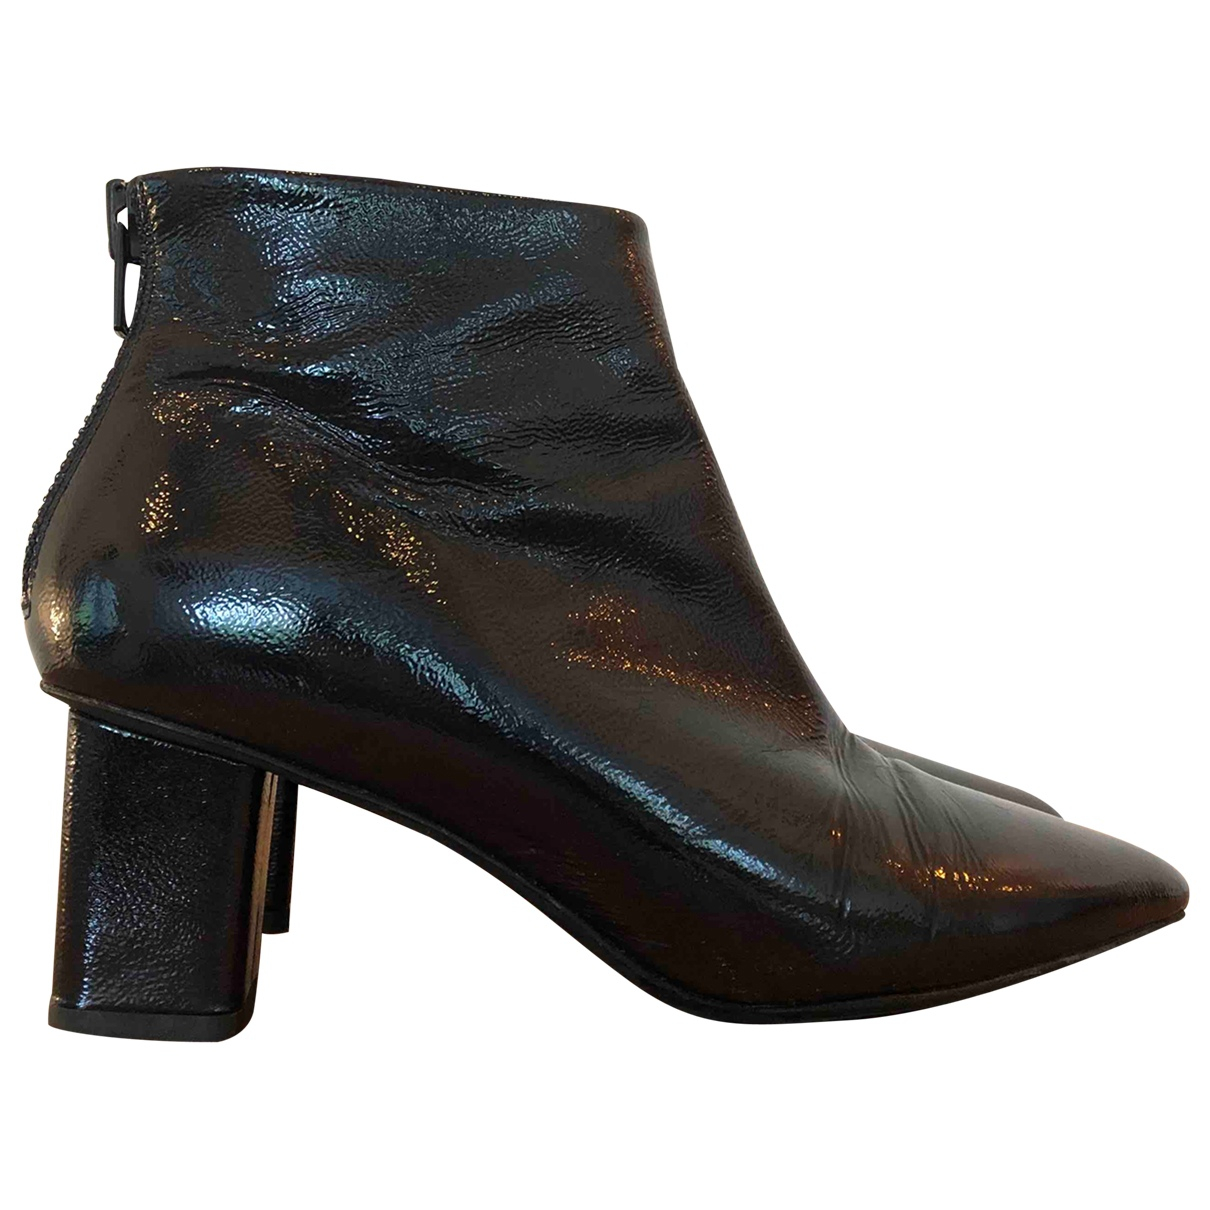 H&m Studio \N Blue Leather Ankle boots for Women 38 EU